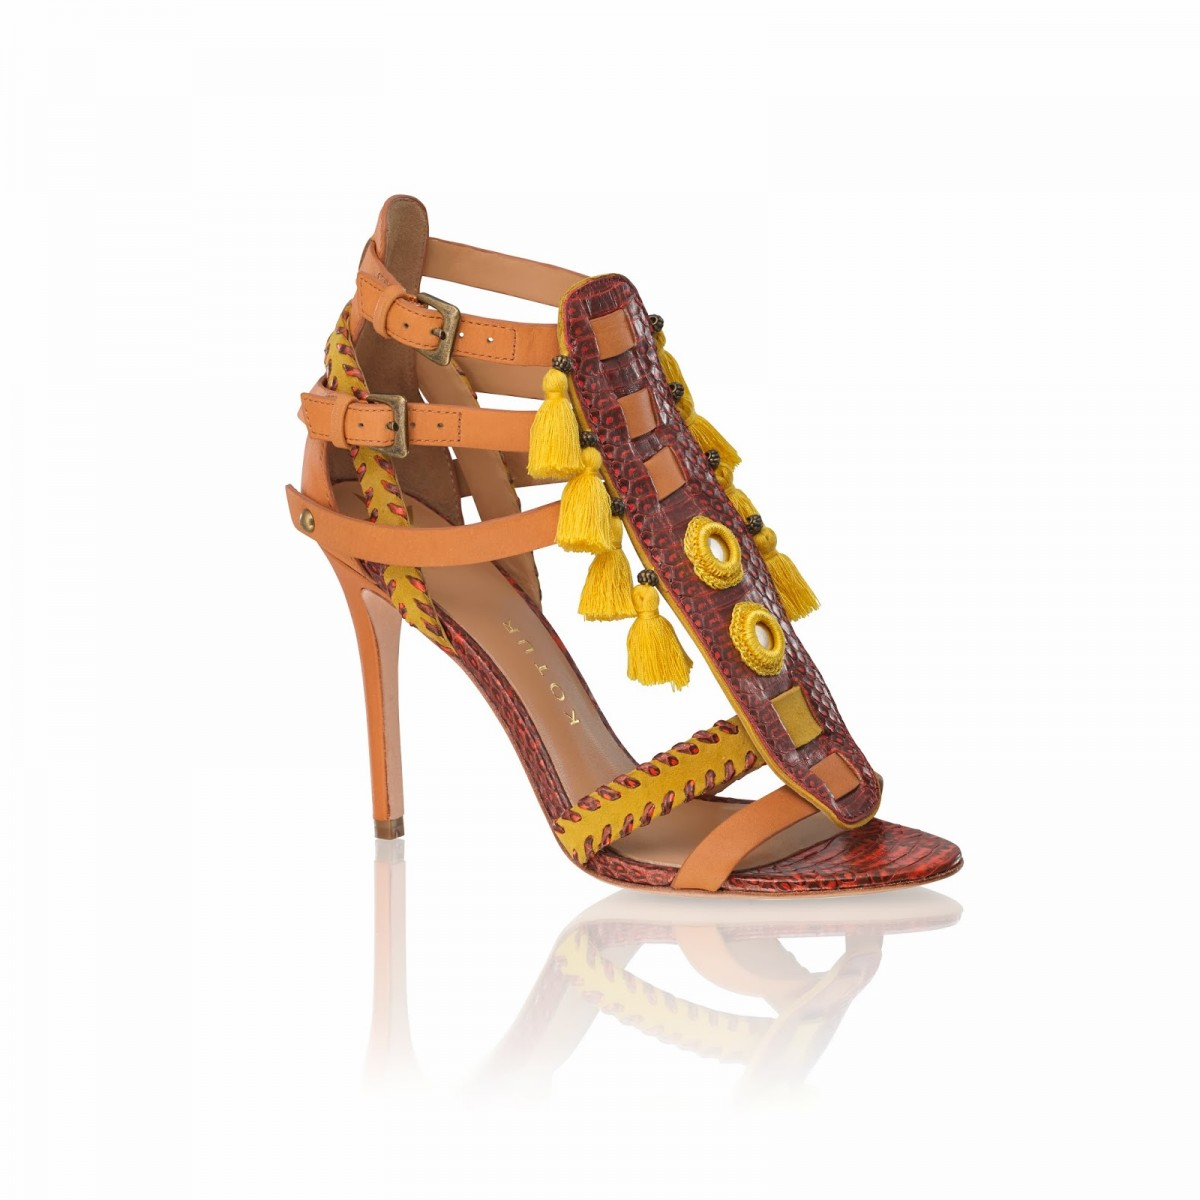 guzel-kotur-shoes-yellow-snakeskin-suede-ss14-3quarters